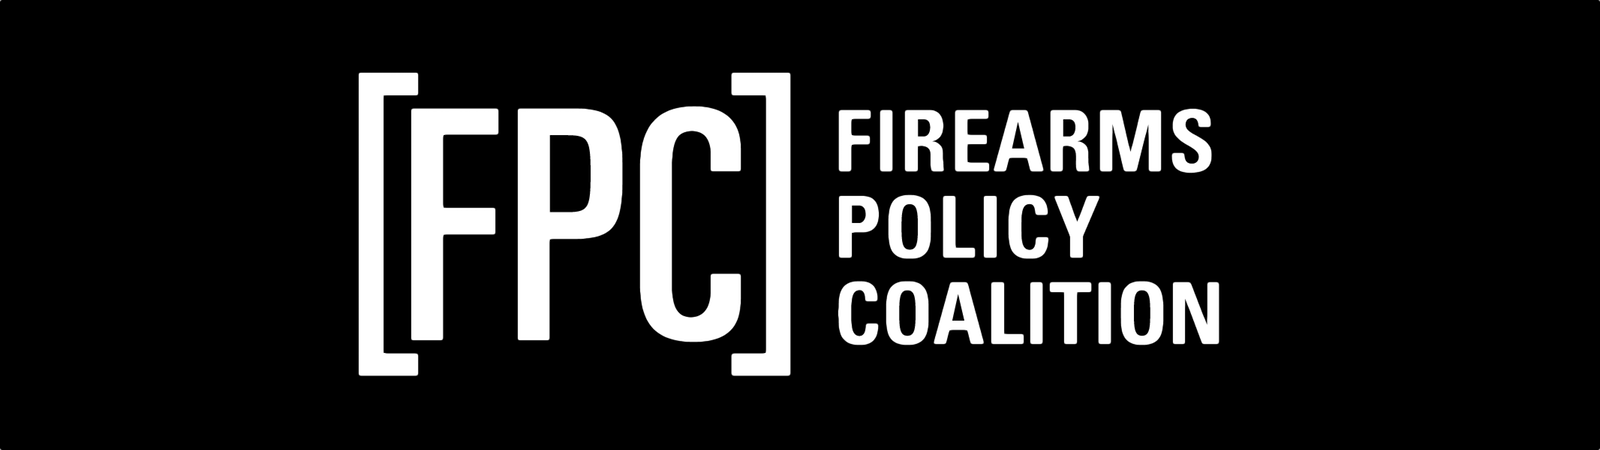 Firearms Policy Coalition: General Fundraising